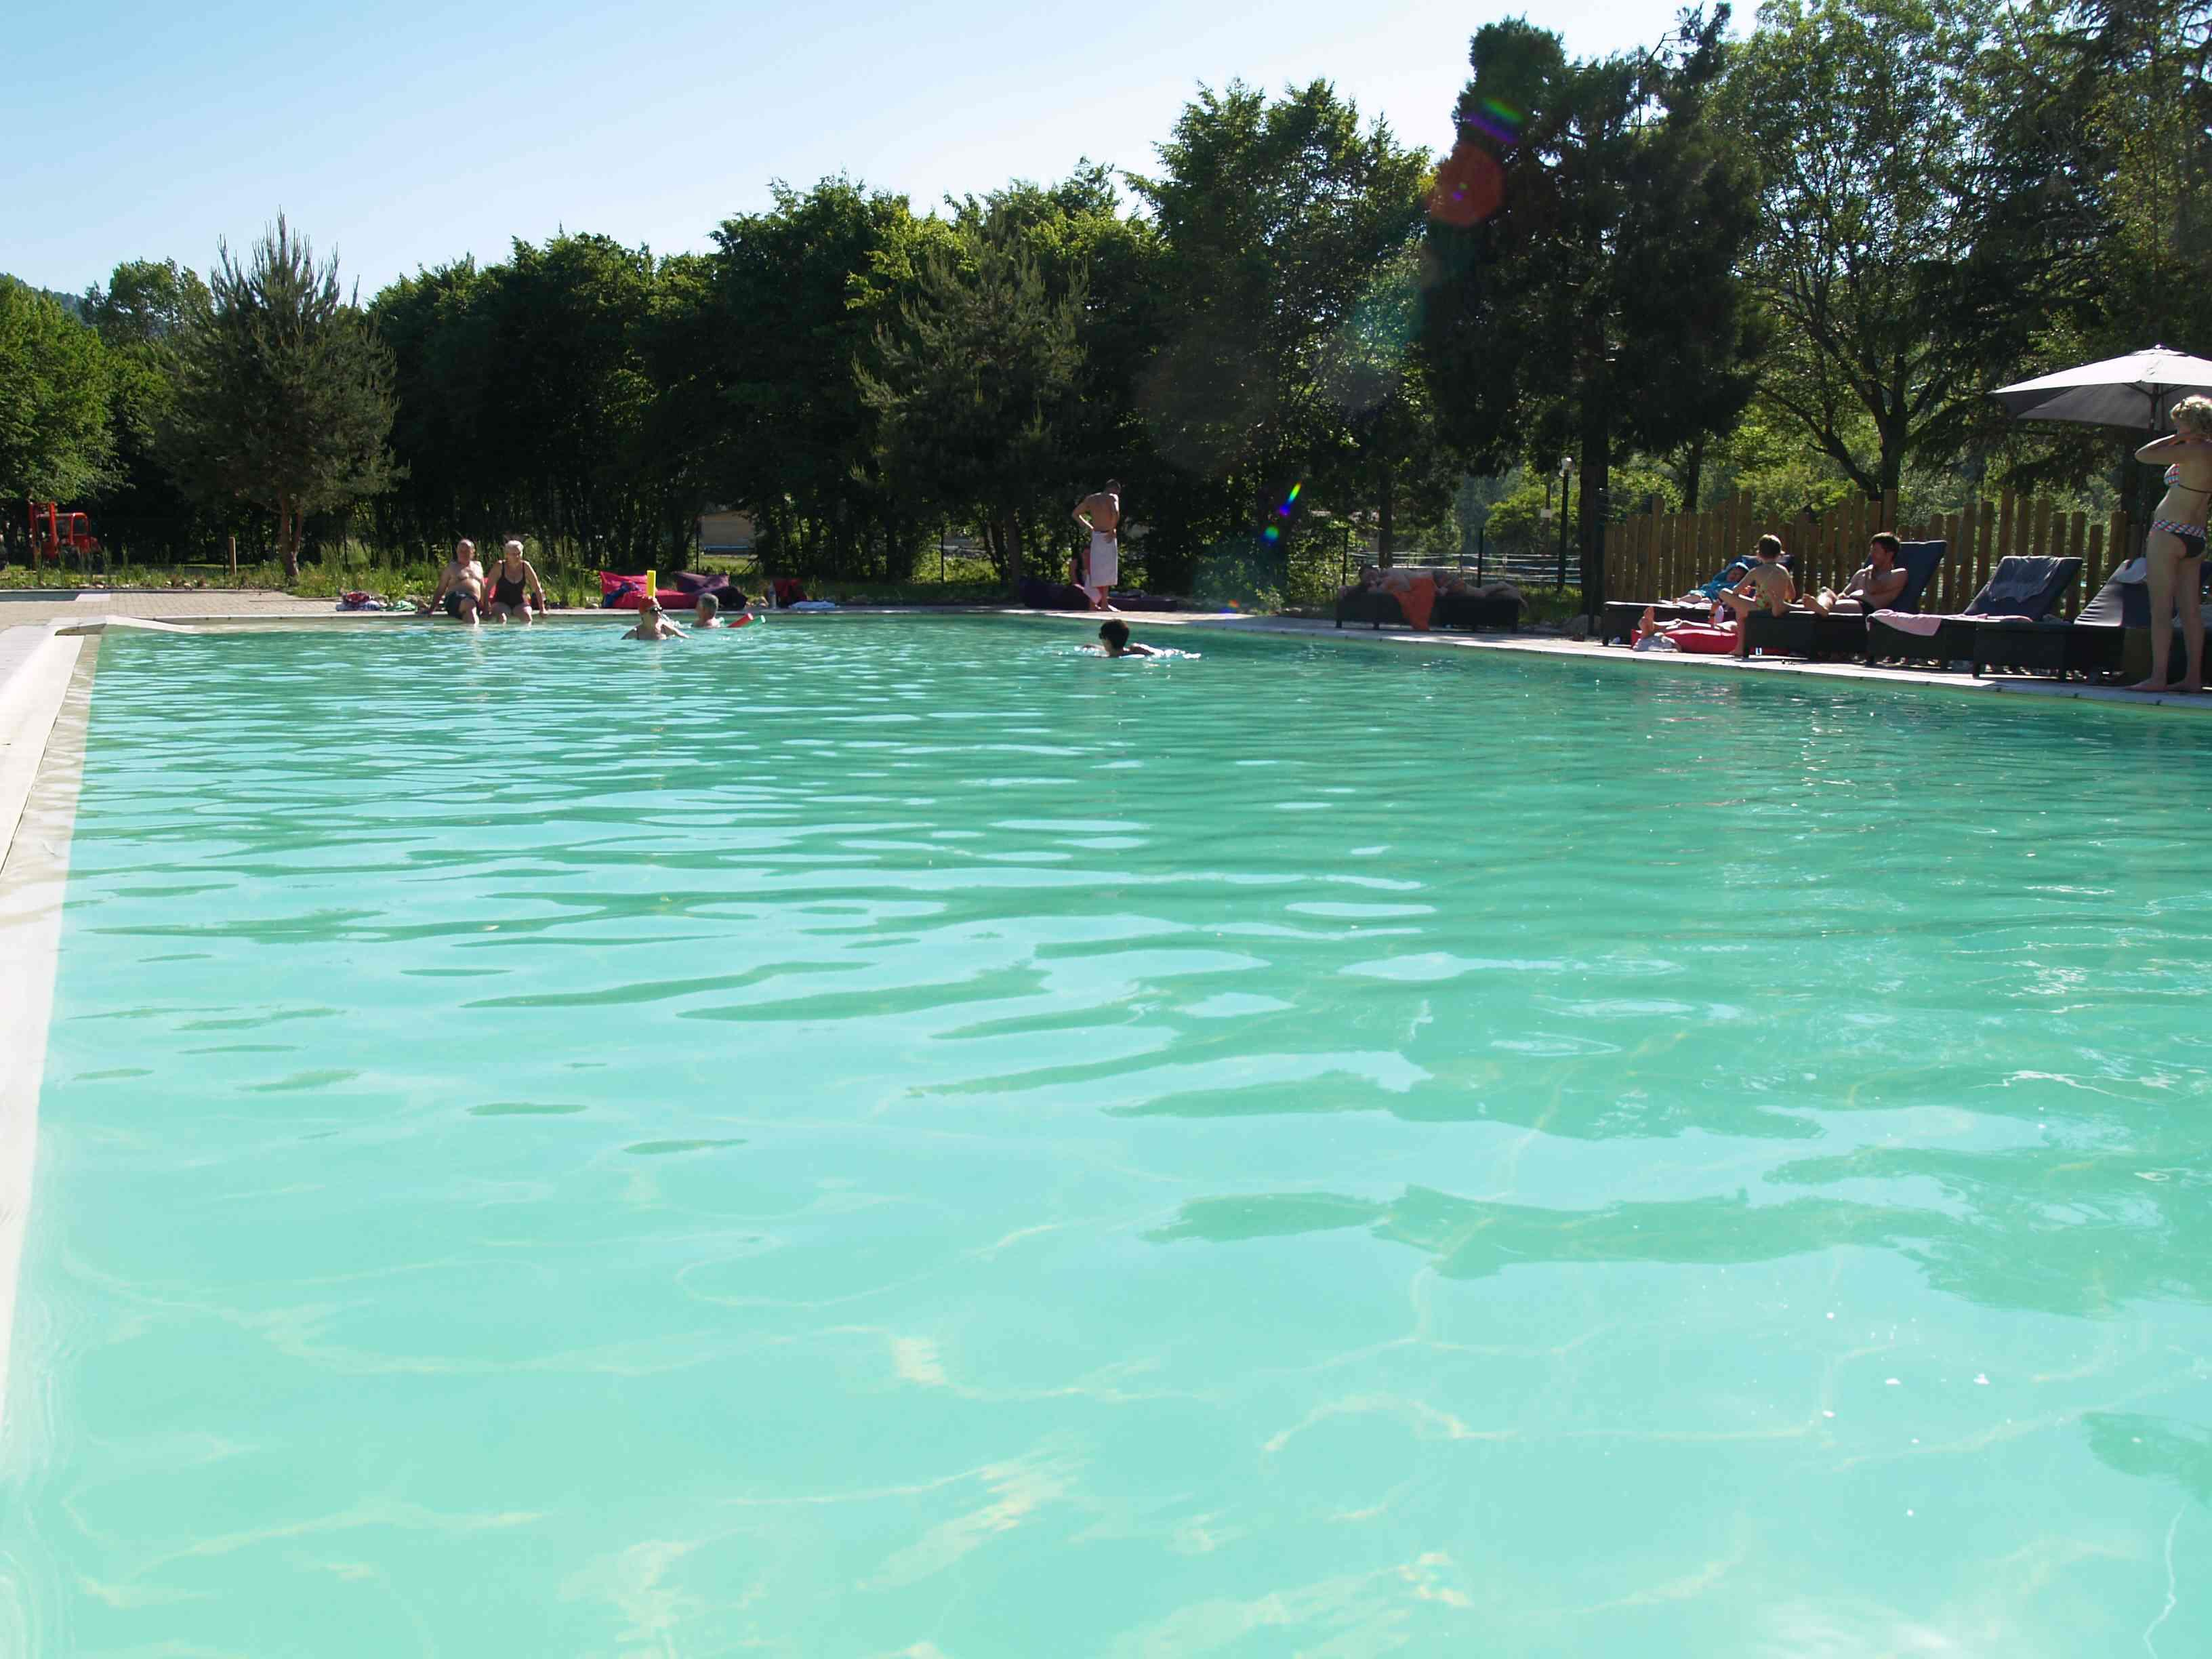 Cosycamp camping les ribes 43800 chamali res sur loire - Horaires piscine chamalieres ...